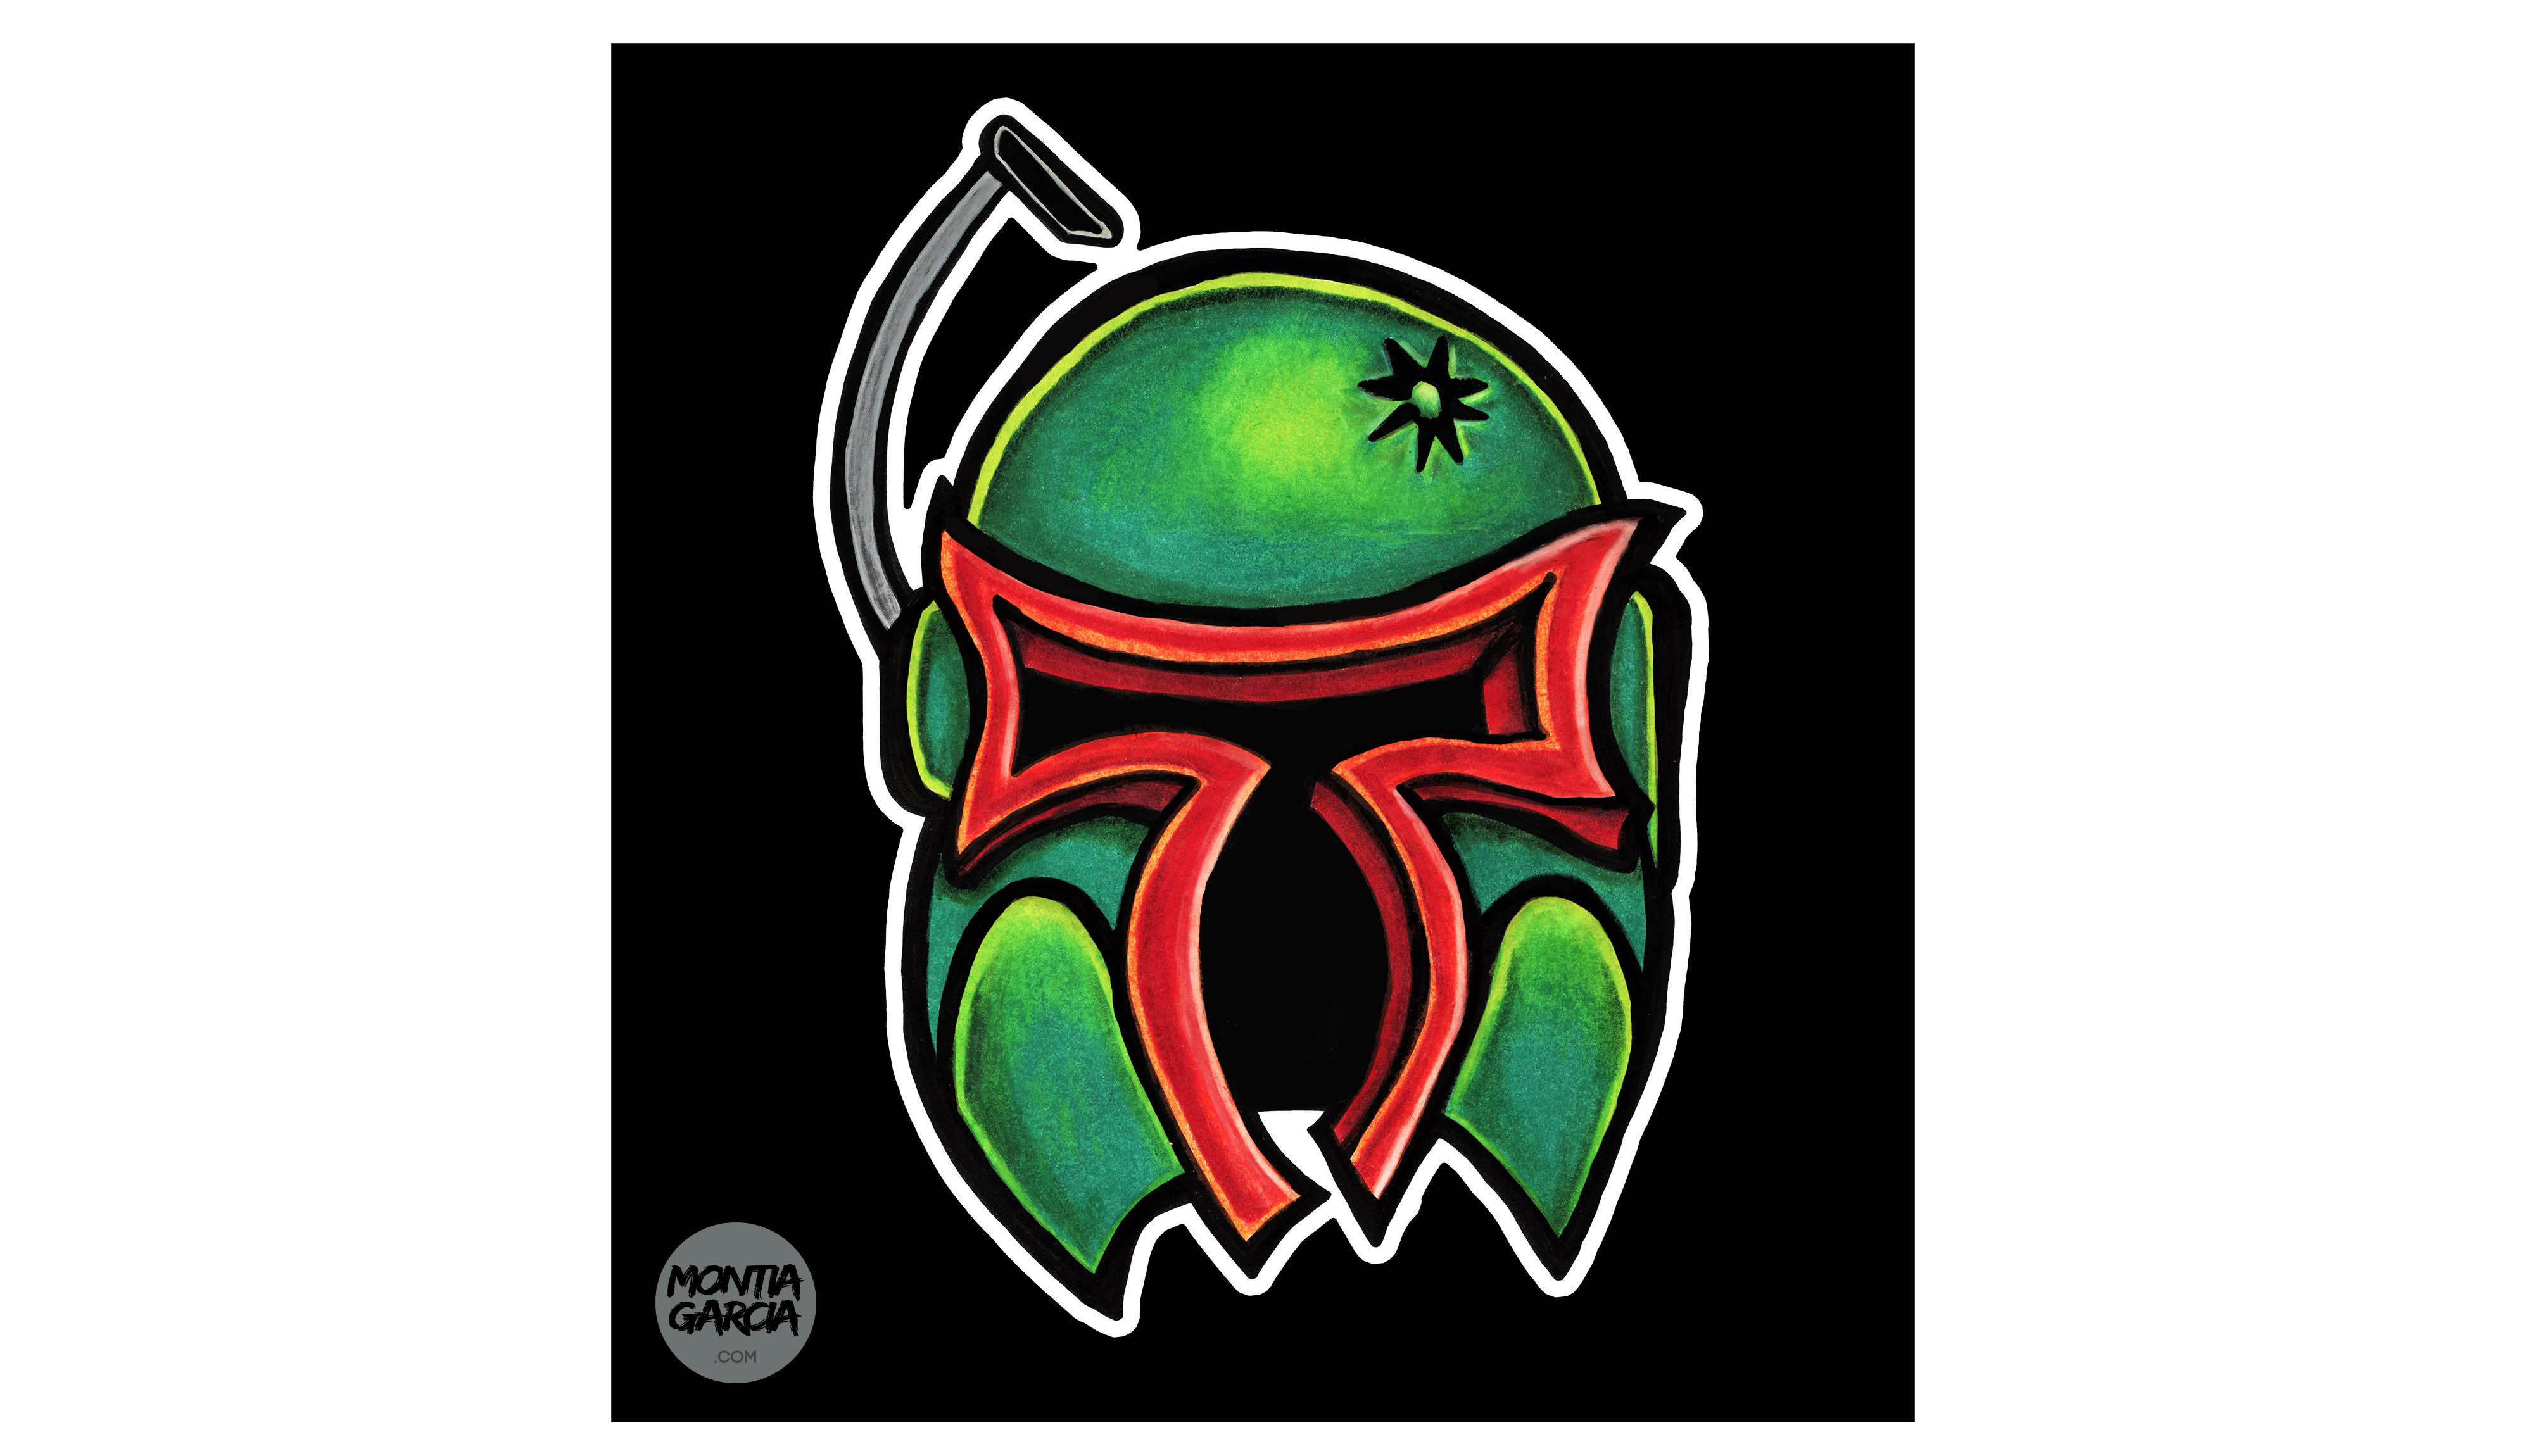 Boba Fett - Ink and Colored Pencil drawing by Montia Garcia